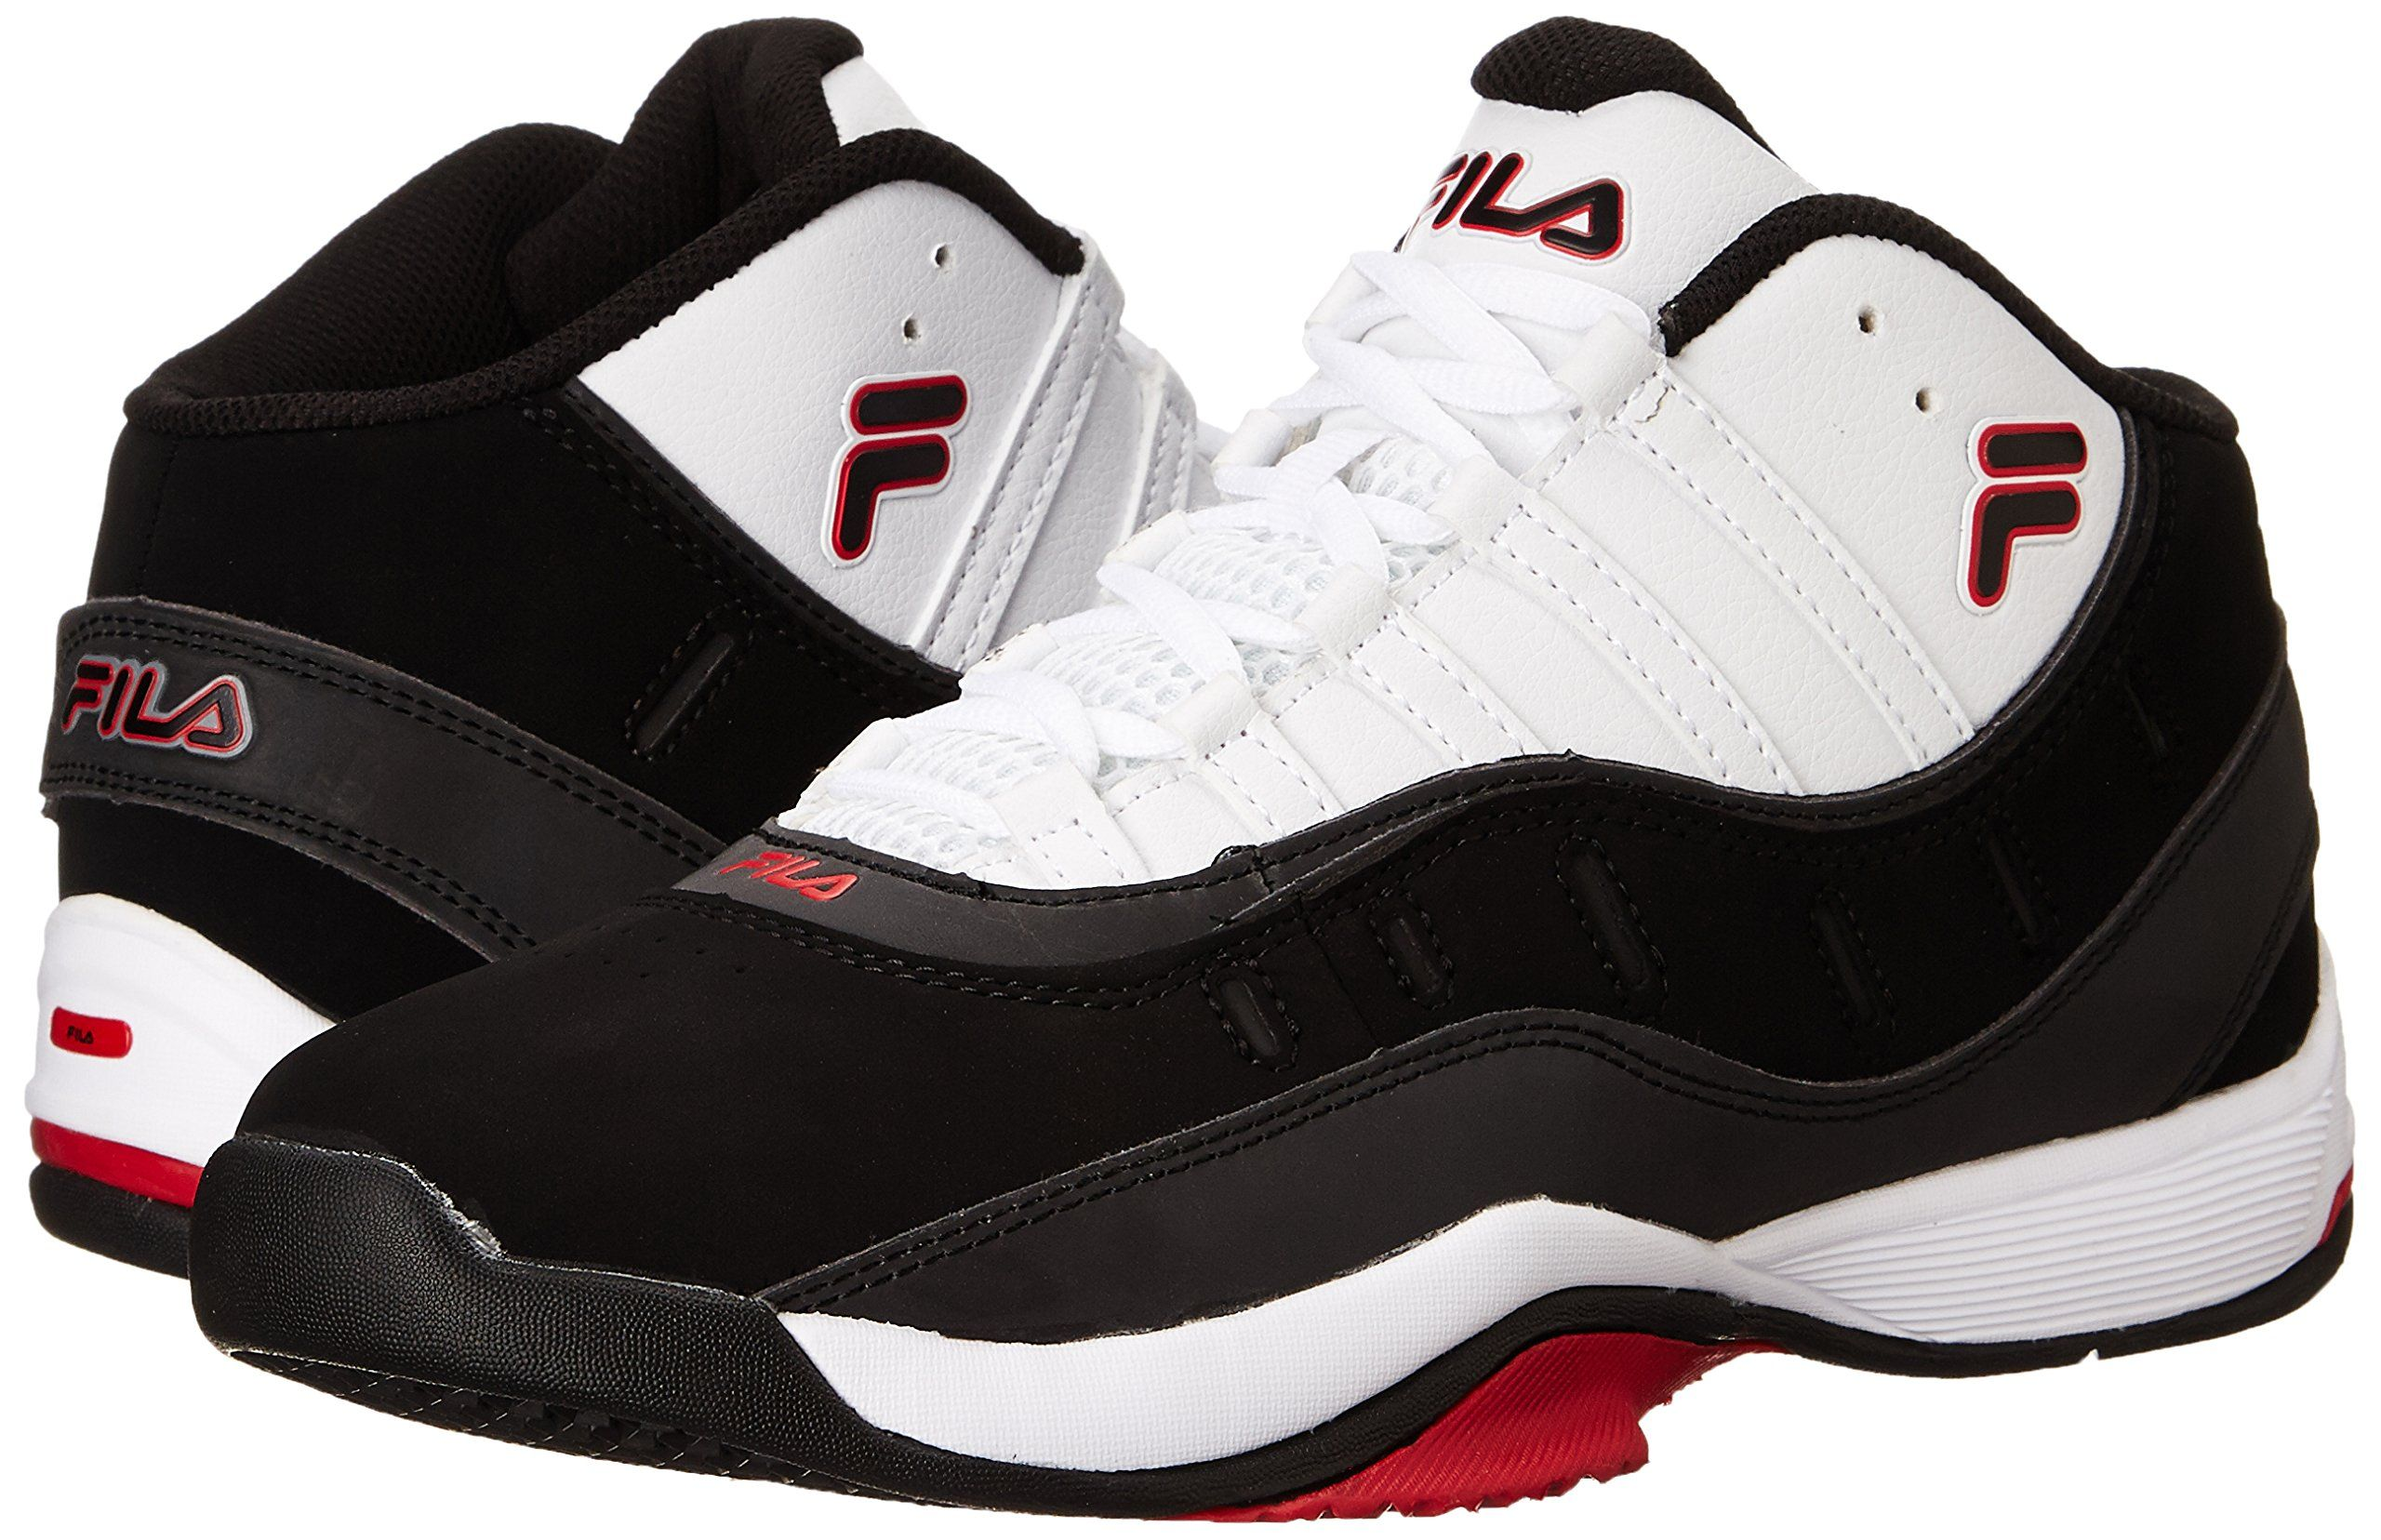 1949879fdcbcc Amazon.com  Fila Men s City Wide 2 Basketball Shoe  Shoes